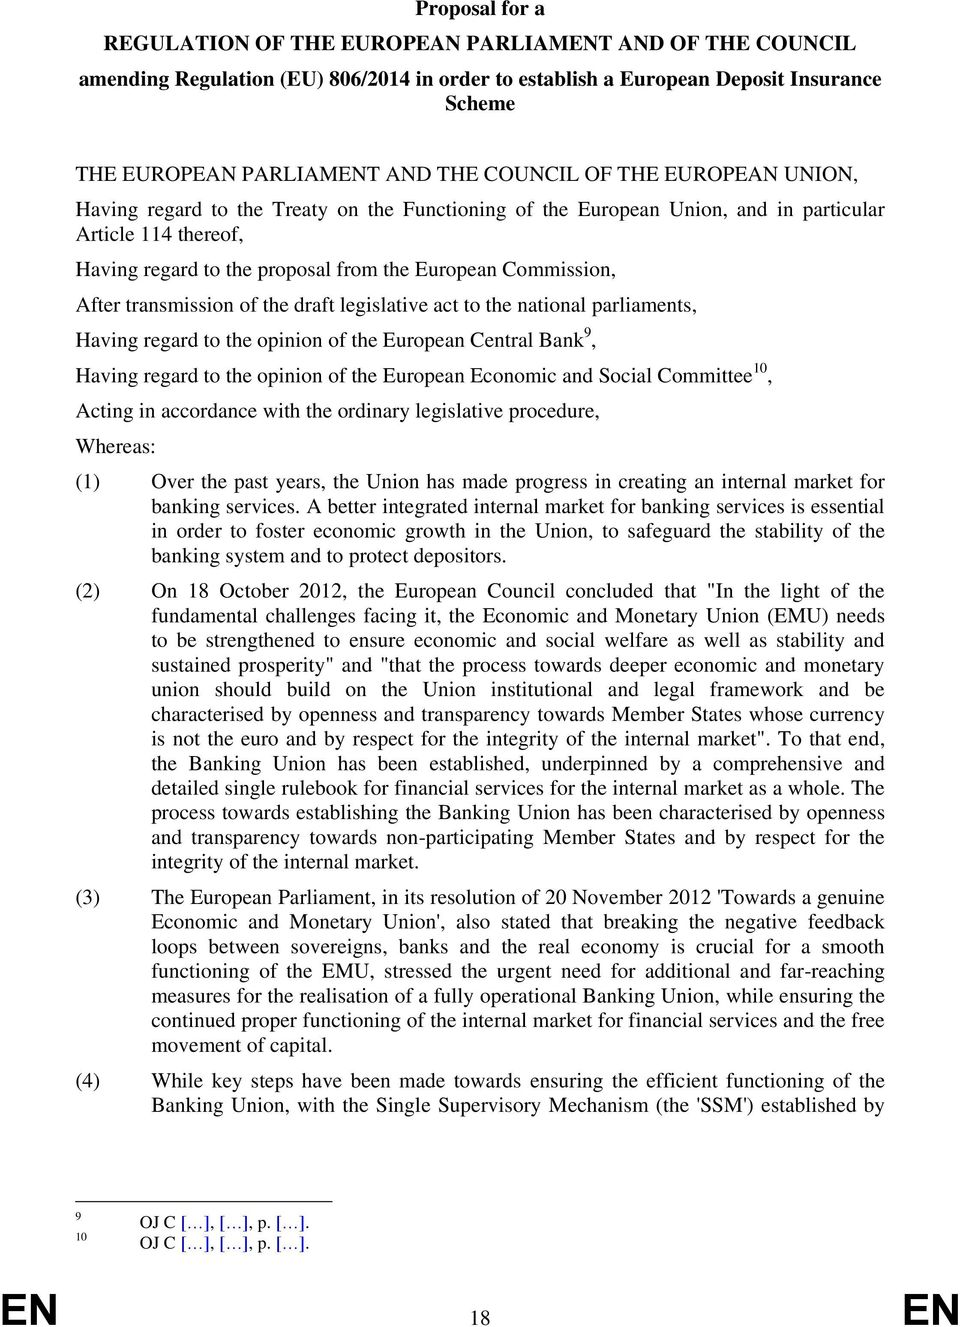 After transmission of the draft legislative act to the national parliaments, Having regard to the opinion of the European Central Bank 9, Having regard to the opinion of the European Economic and